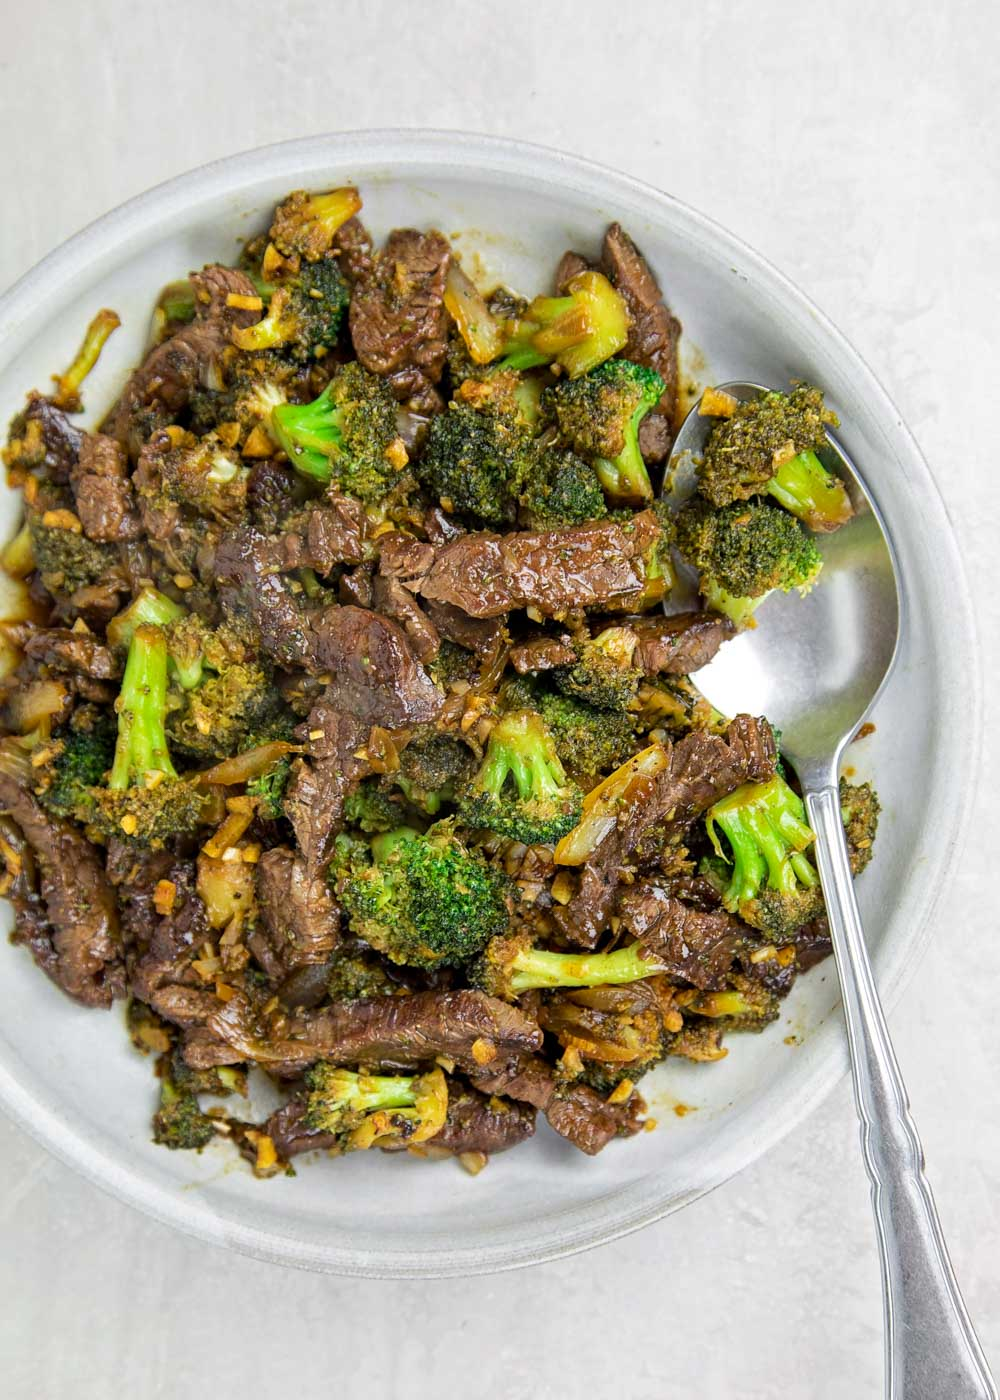 Beef and broccoli stir fry on a white plate with a spoon